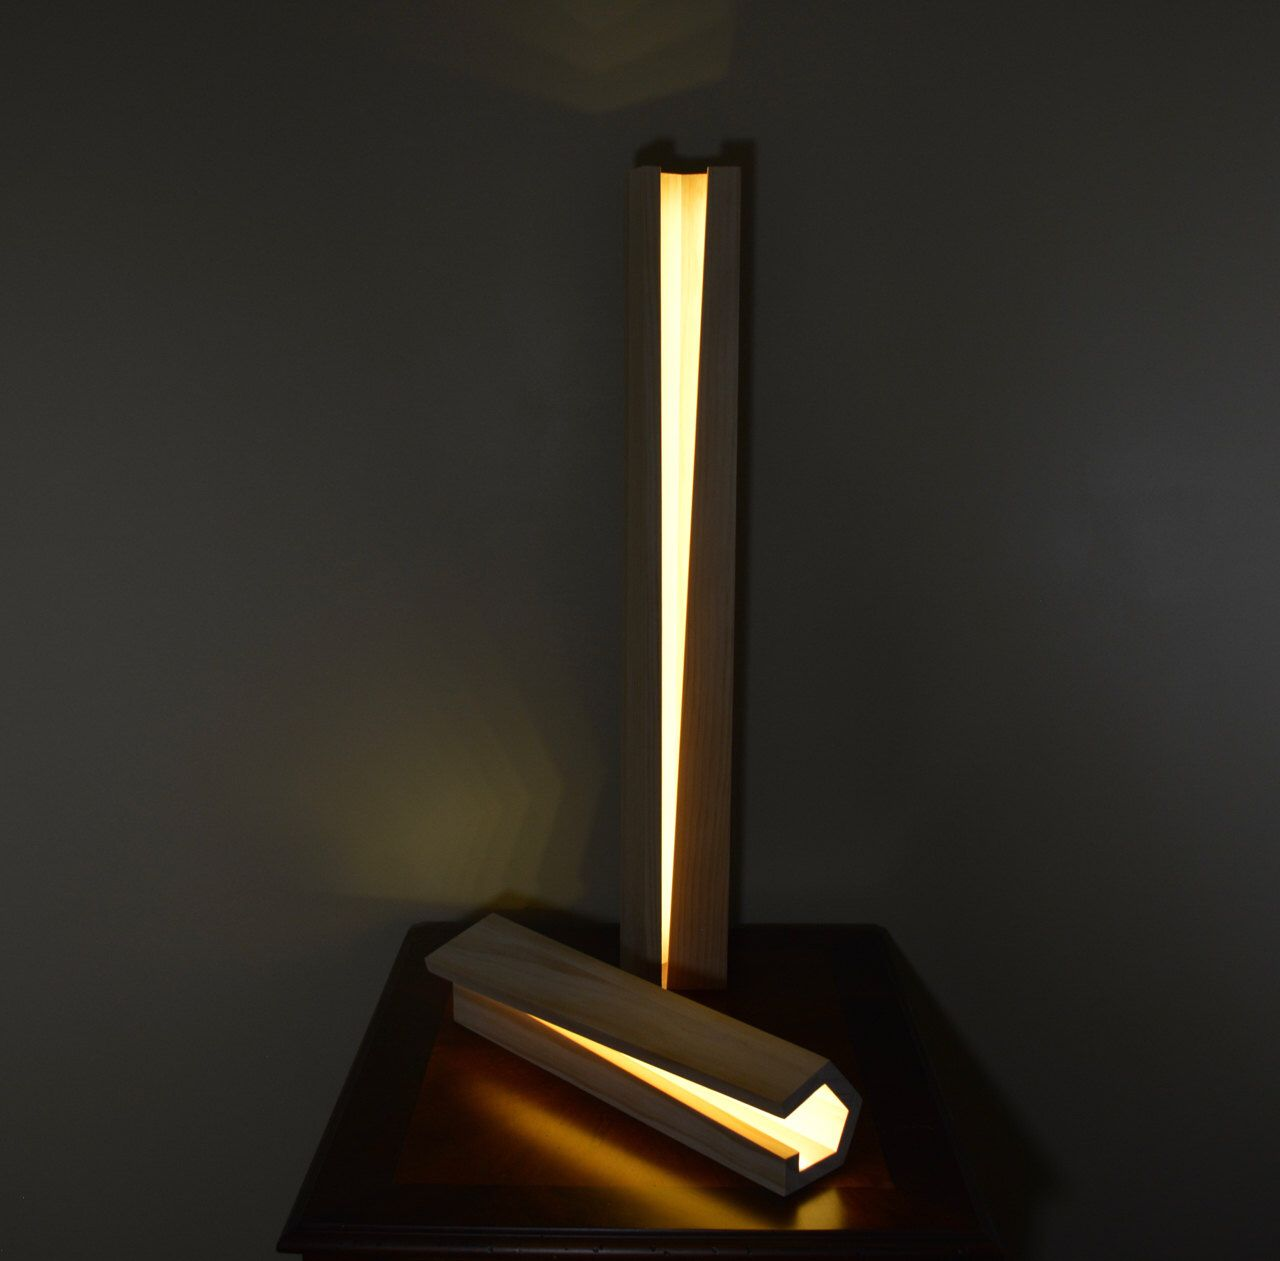 Modern Wood Lamp by NomadWoodworkingShop on Etsy https://www.etsy.com/listing/234435081/modern-wood-lamp